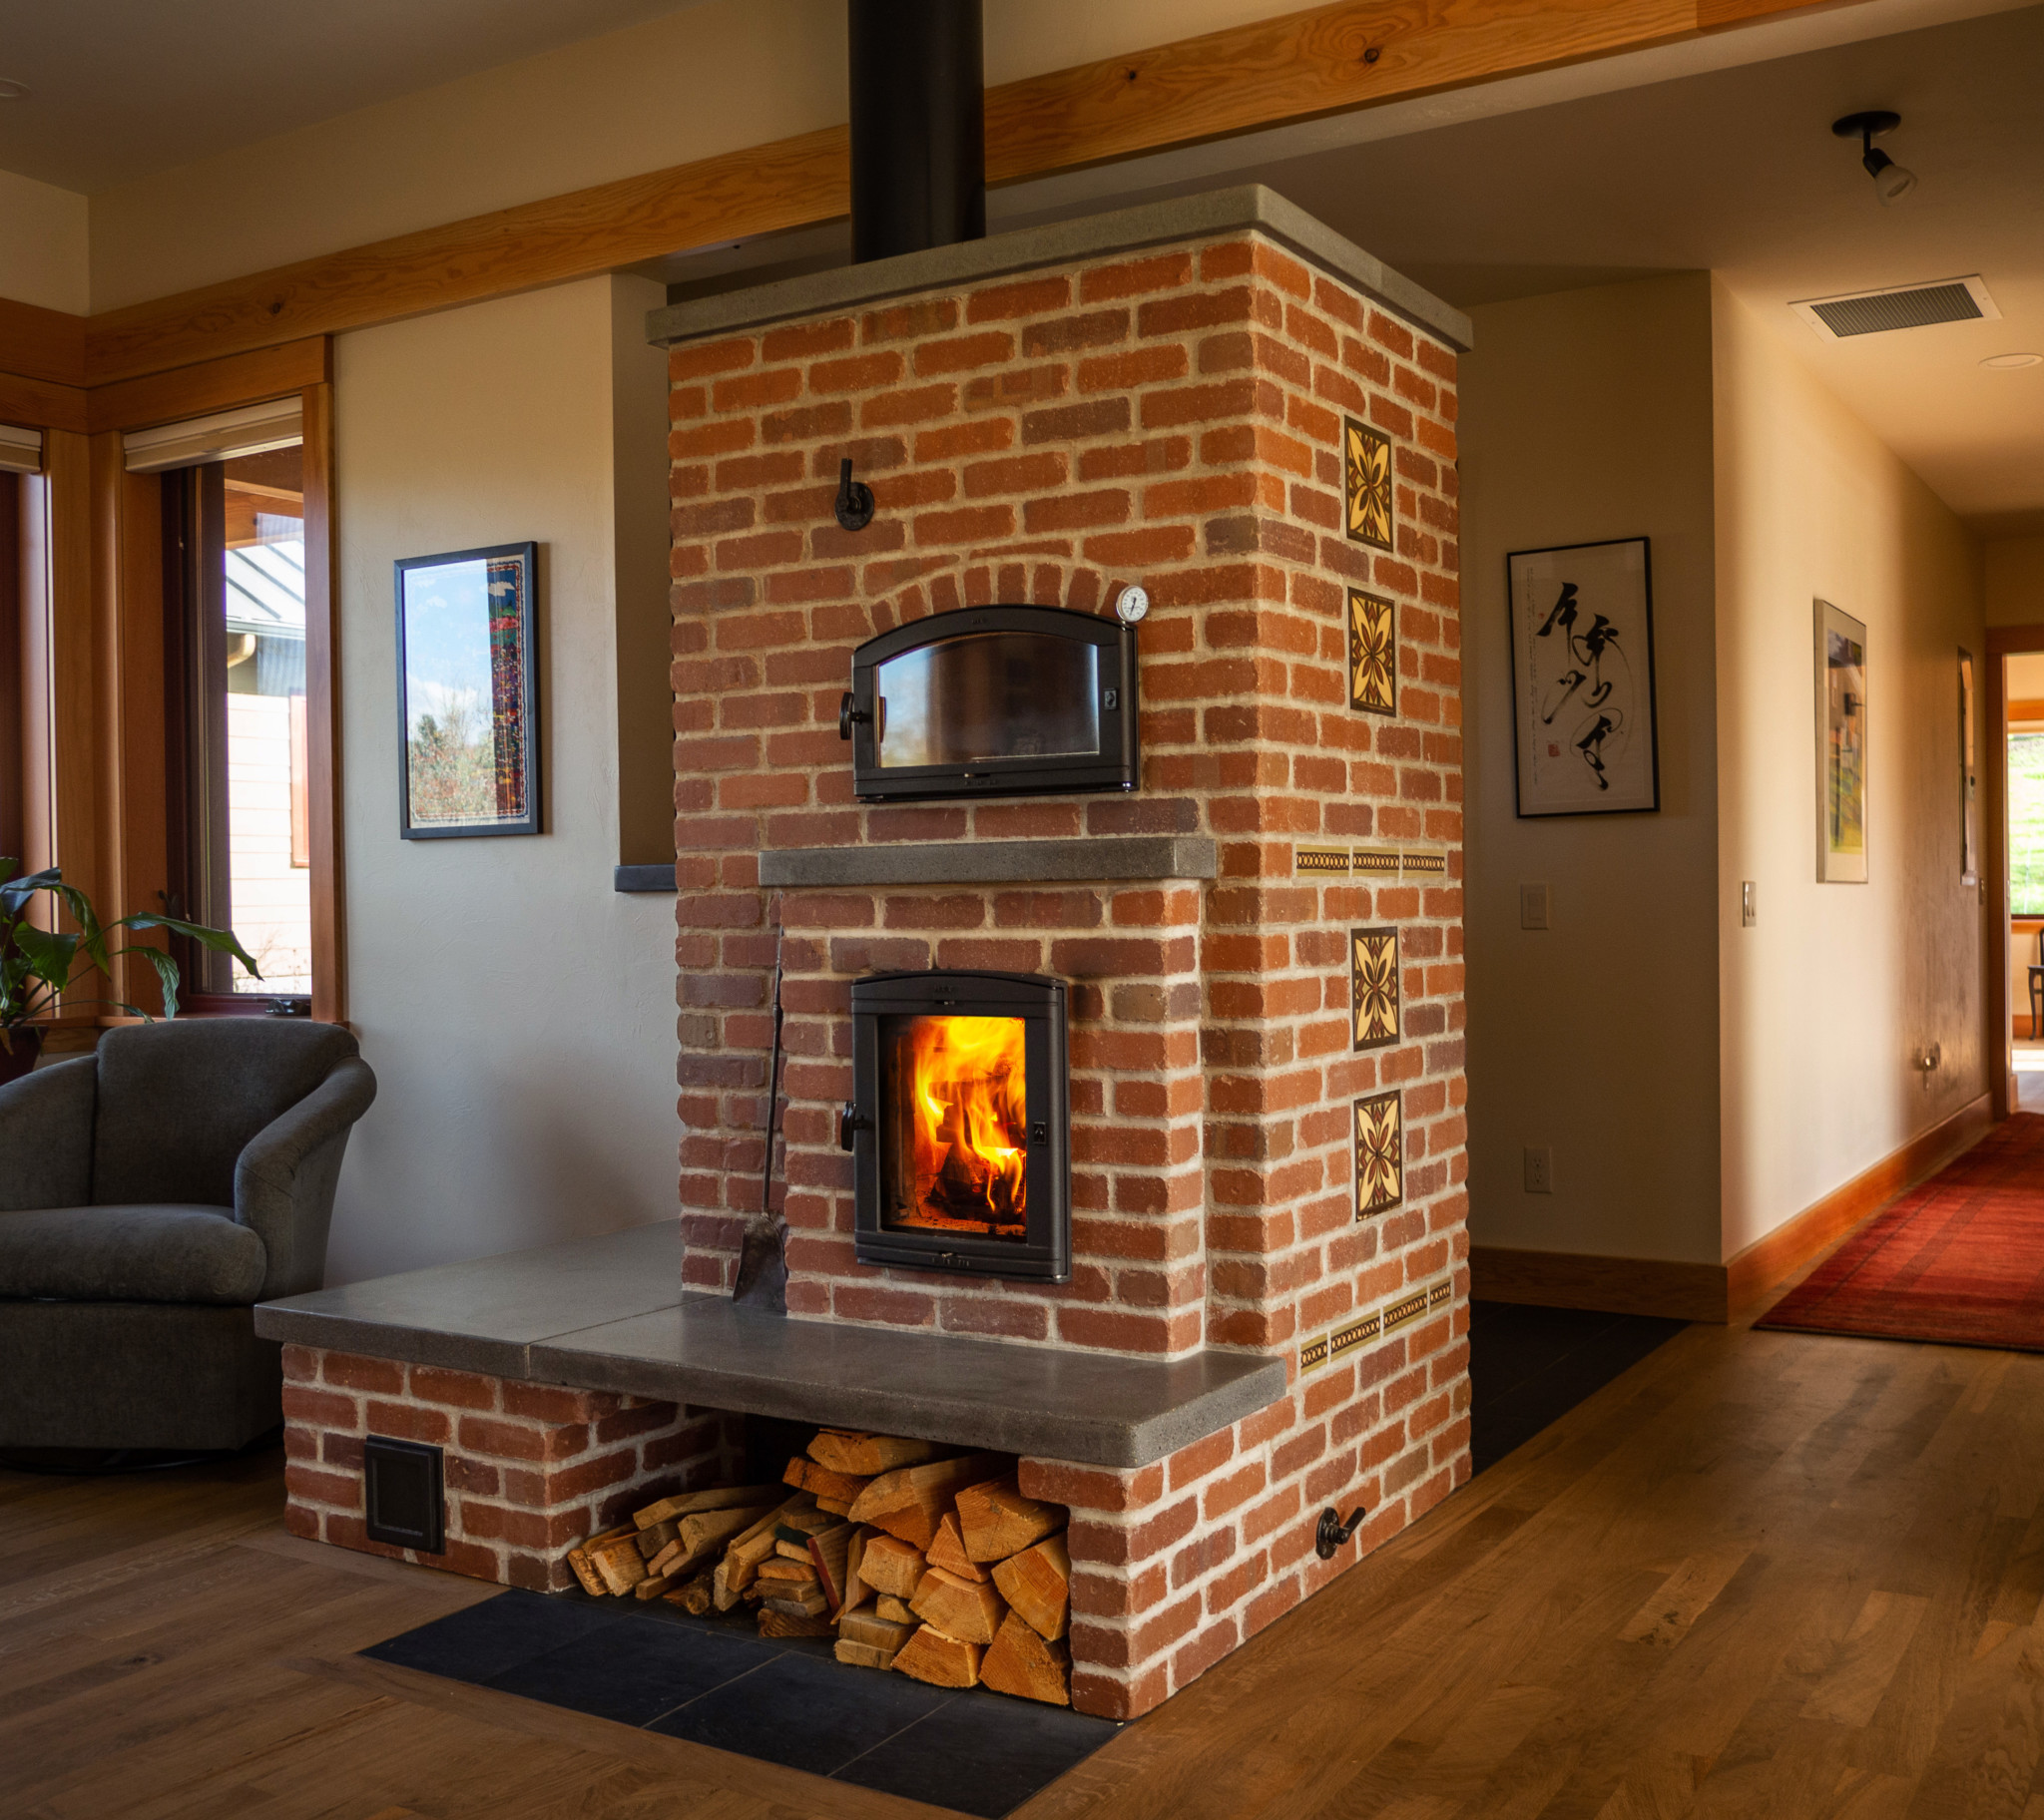 Wintergreen Masonry Heater Highlighted